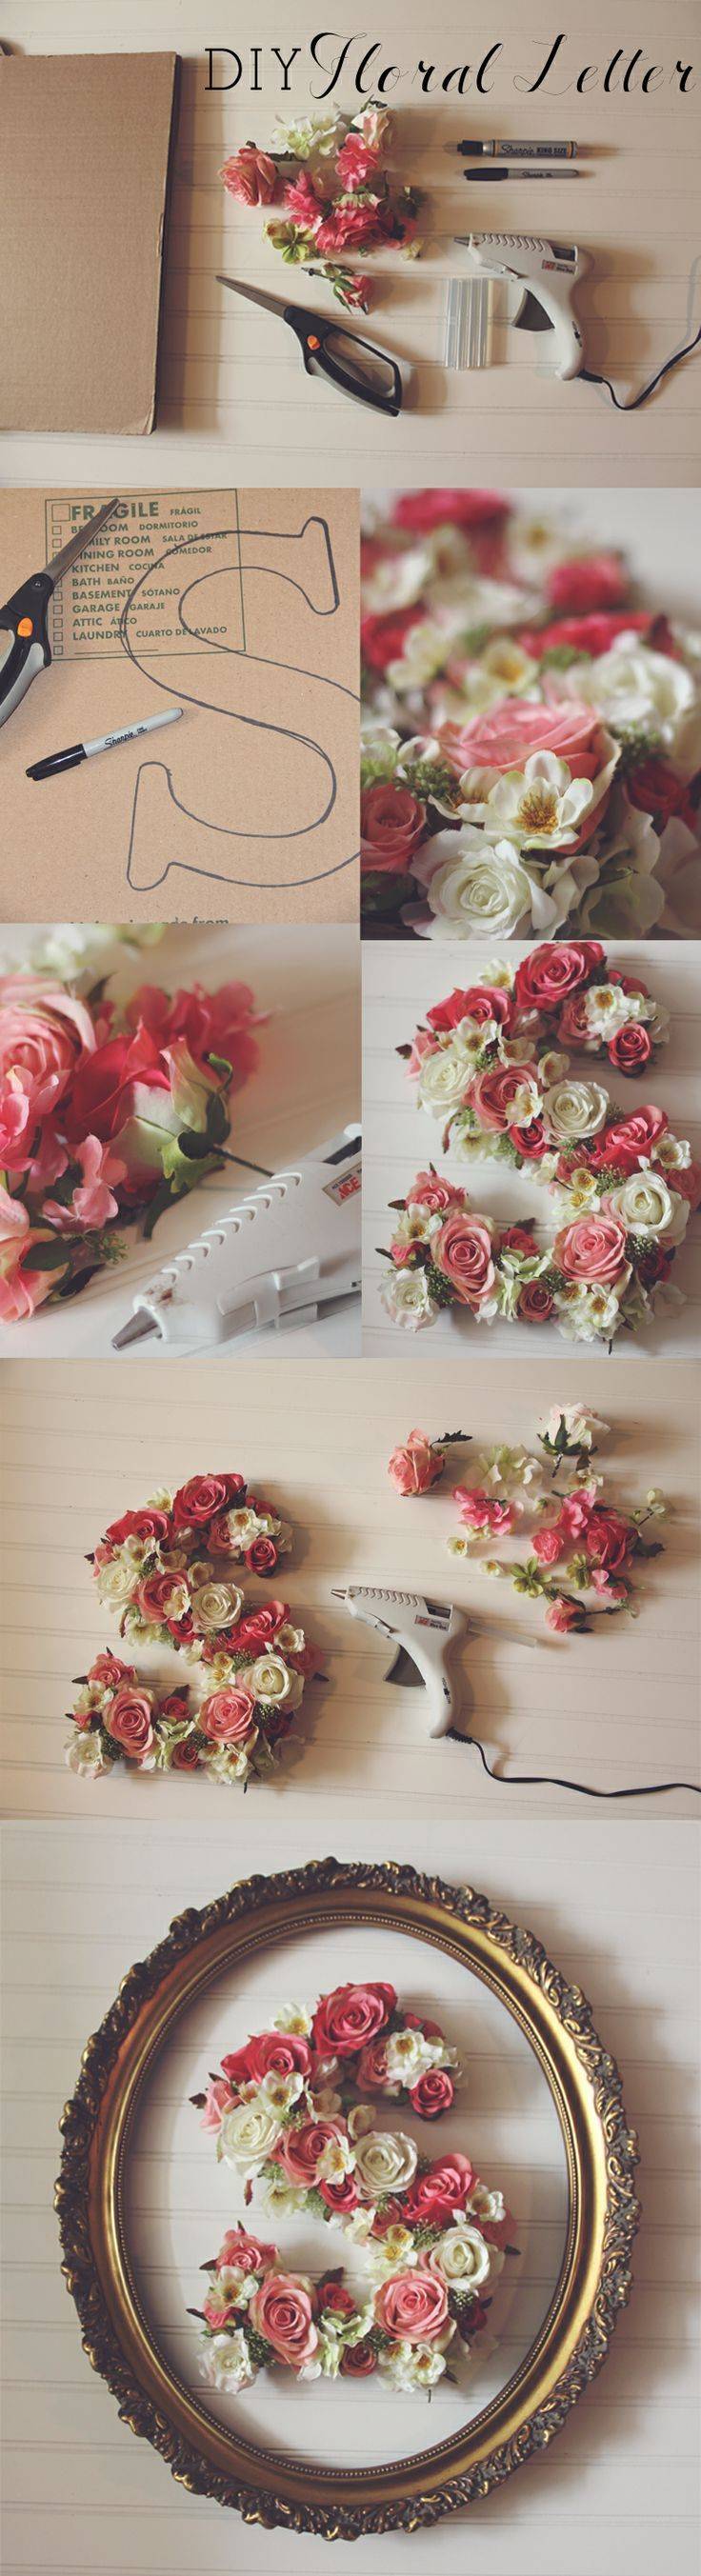 DIY floral letter...Love it, I'm sooooo doing this!!! - we can SO make this for your wedding!!!